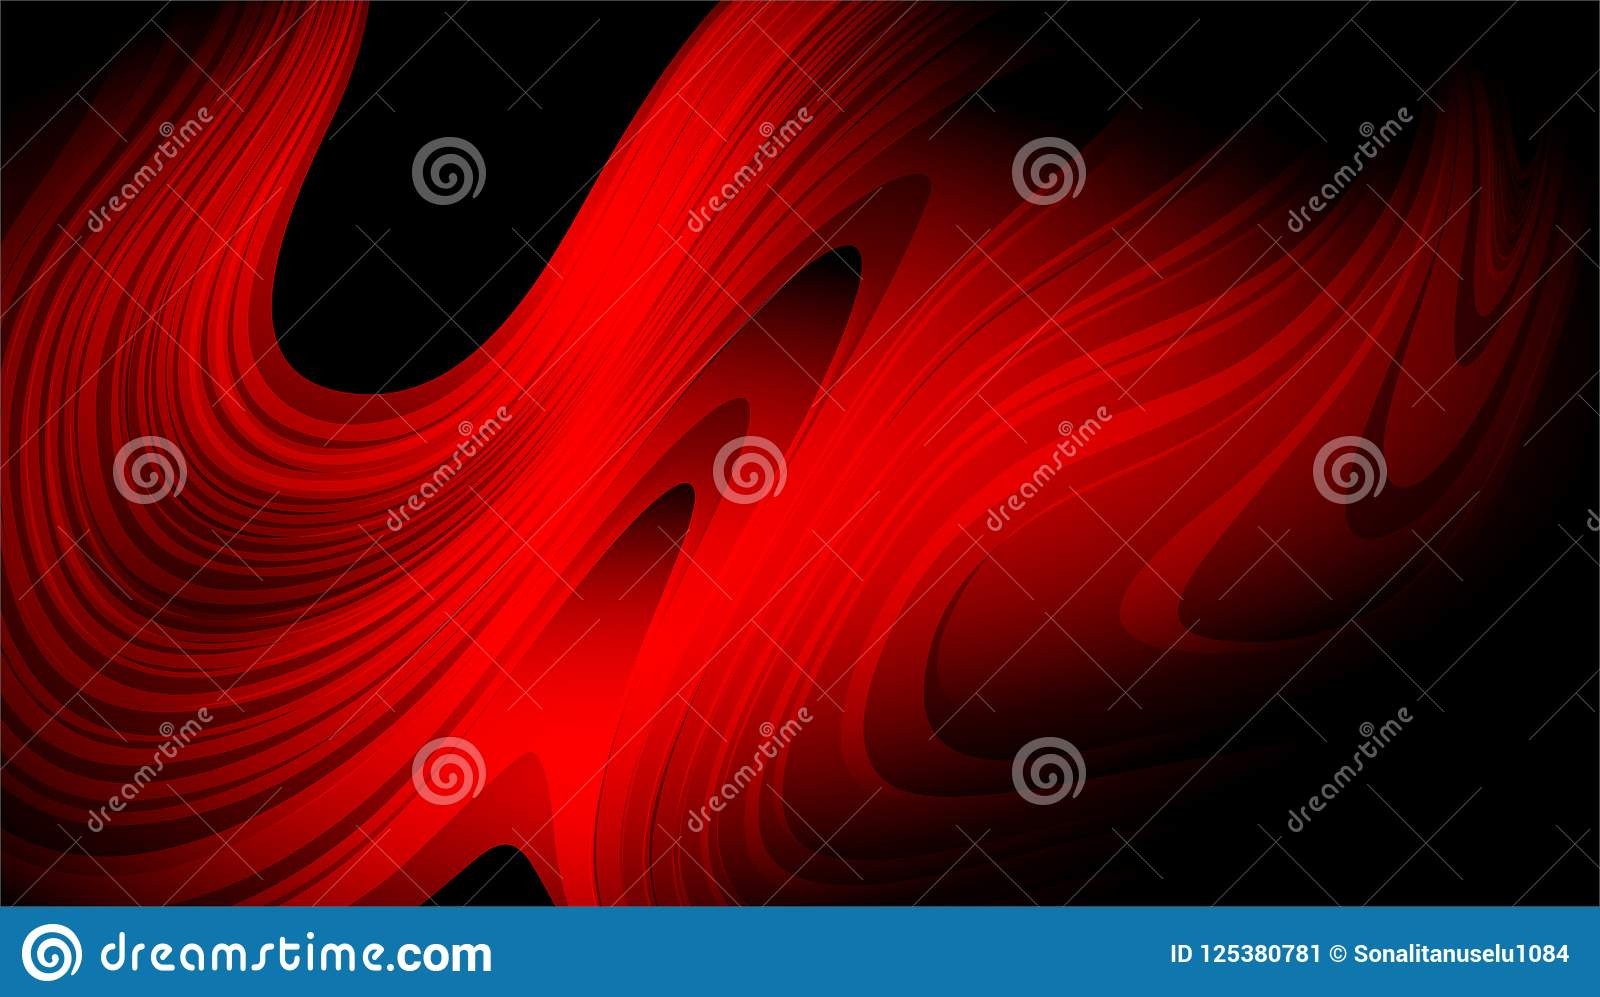 Download Red And Black Abstract Vector Shaded Background Wallpaper Illustration Stock